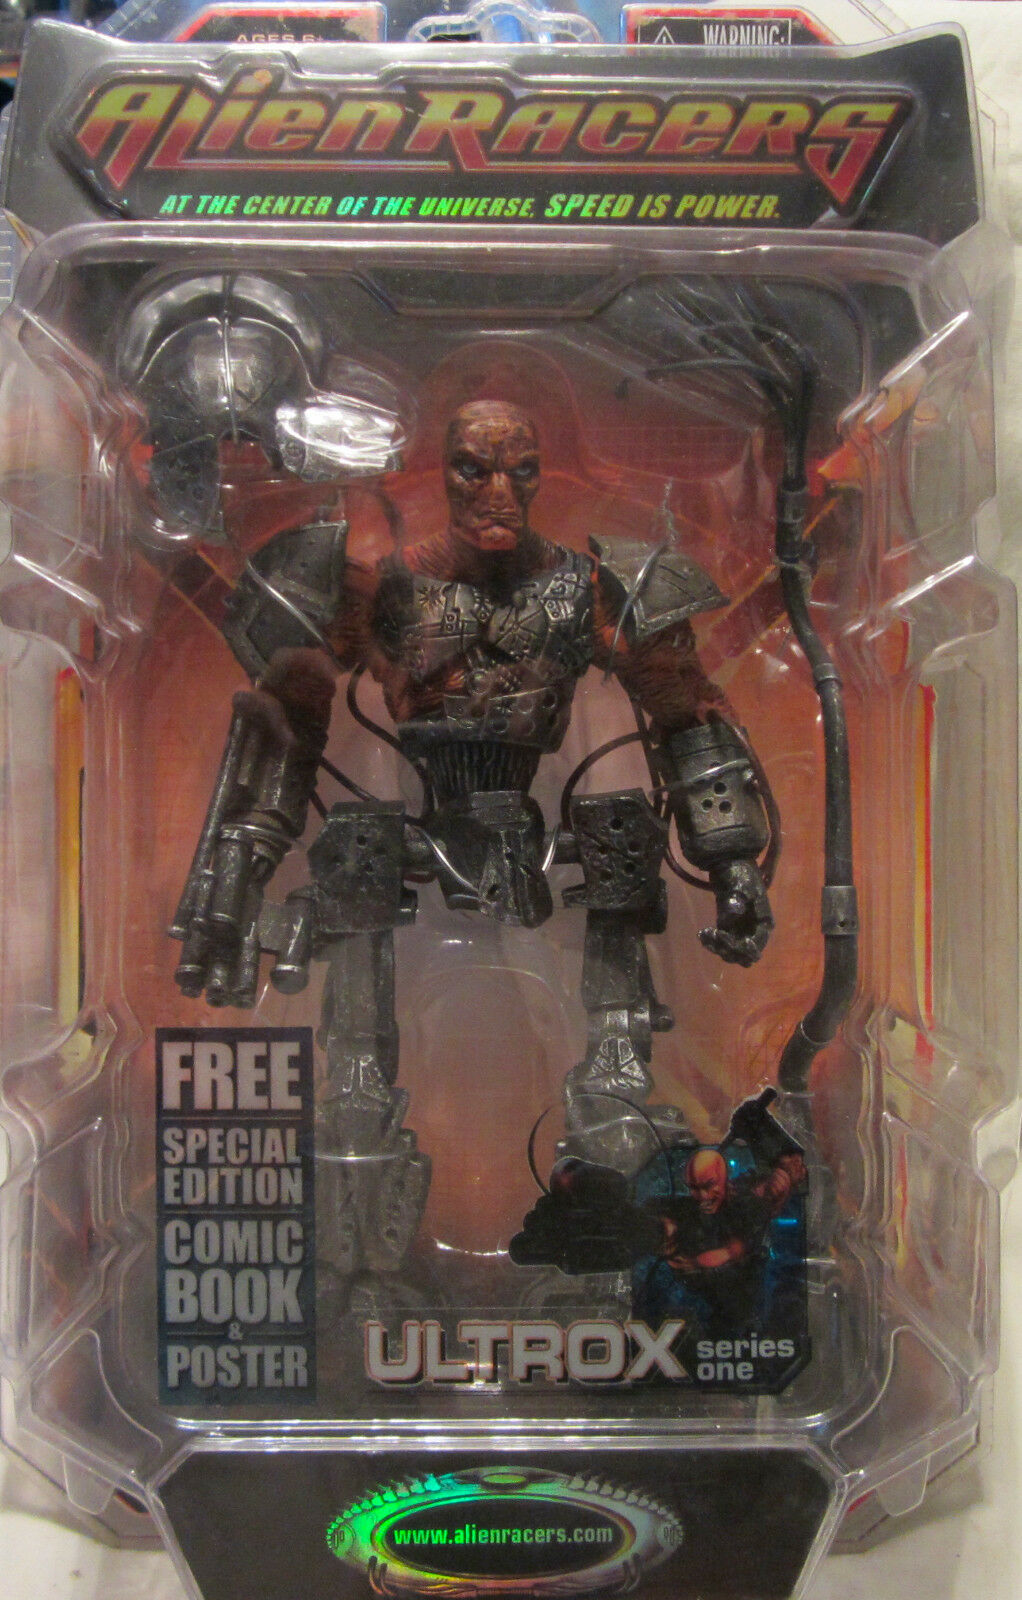 Alien Racers ULTROX Action Figure Series One w Comic Book & Poster NEW